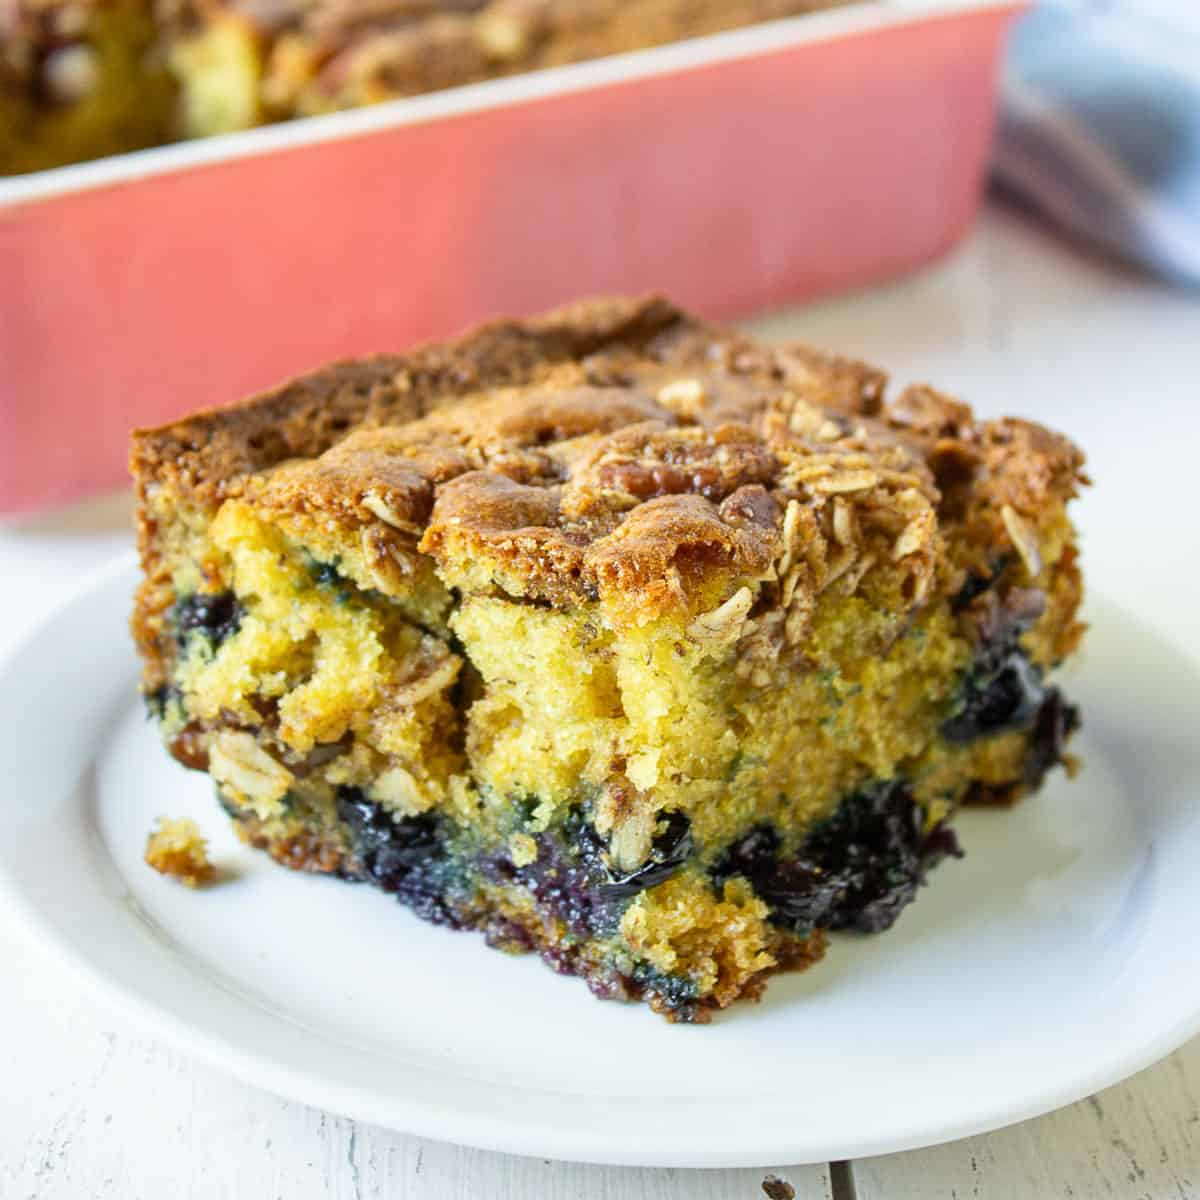 A slice of yellow coffee cake filled with blueberries.